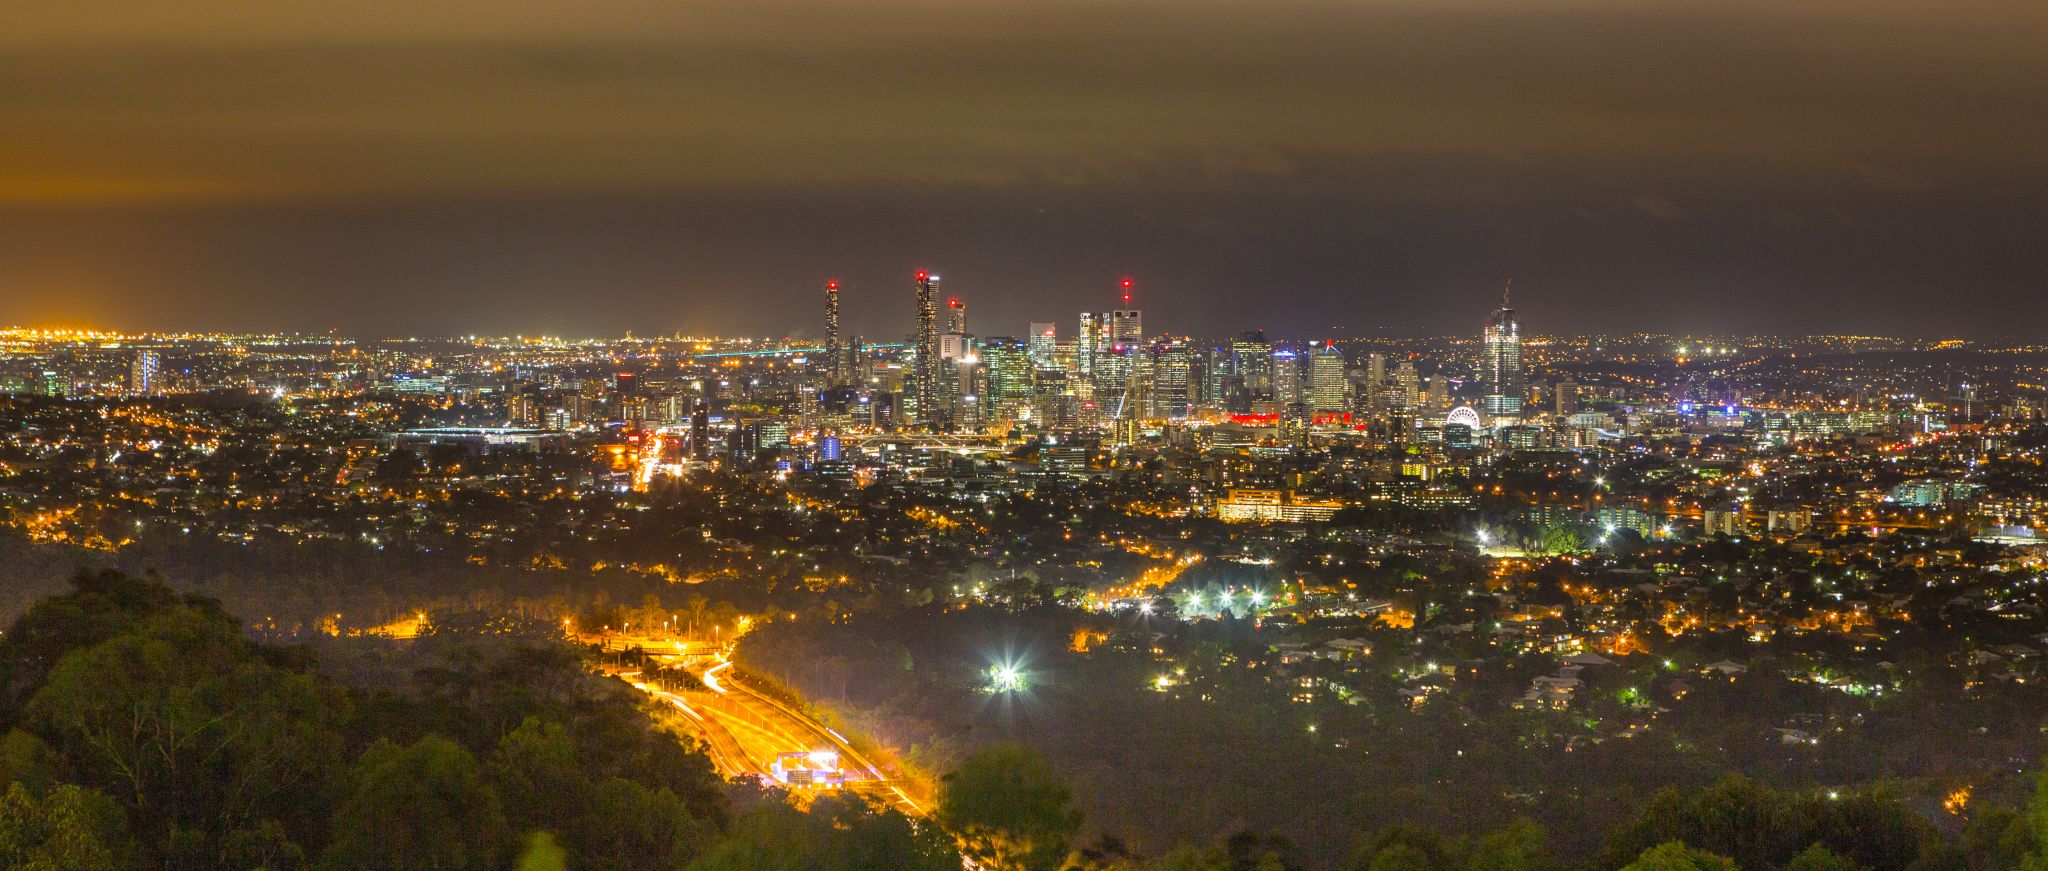 Brisbane skyline from Mt. Coot-tha, Australia